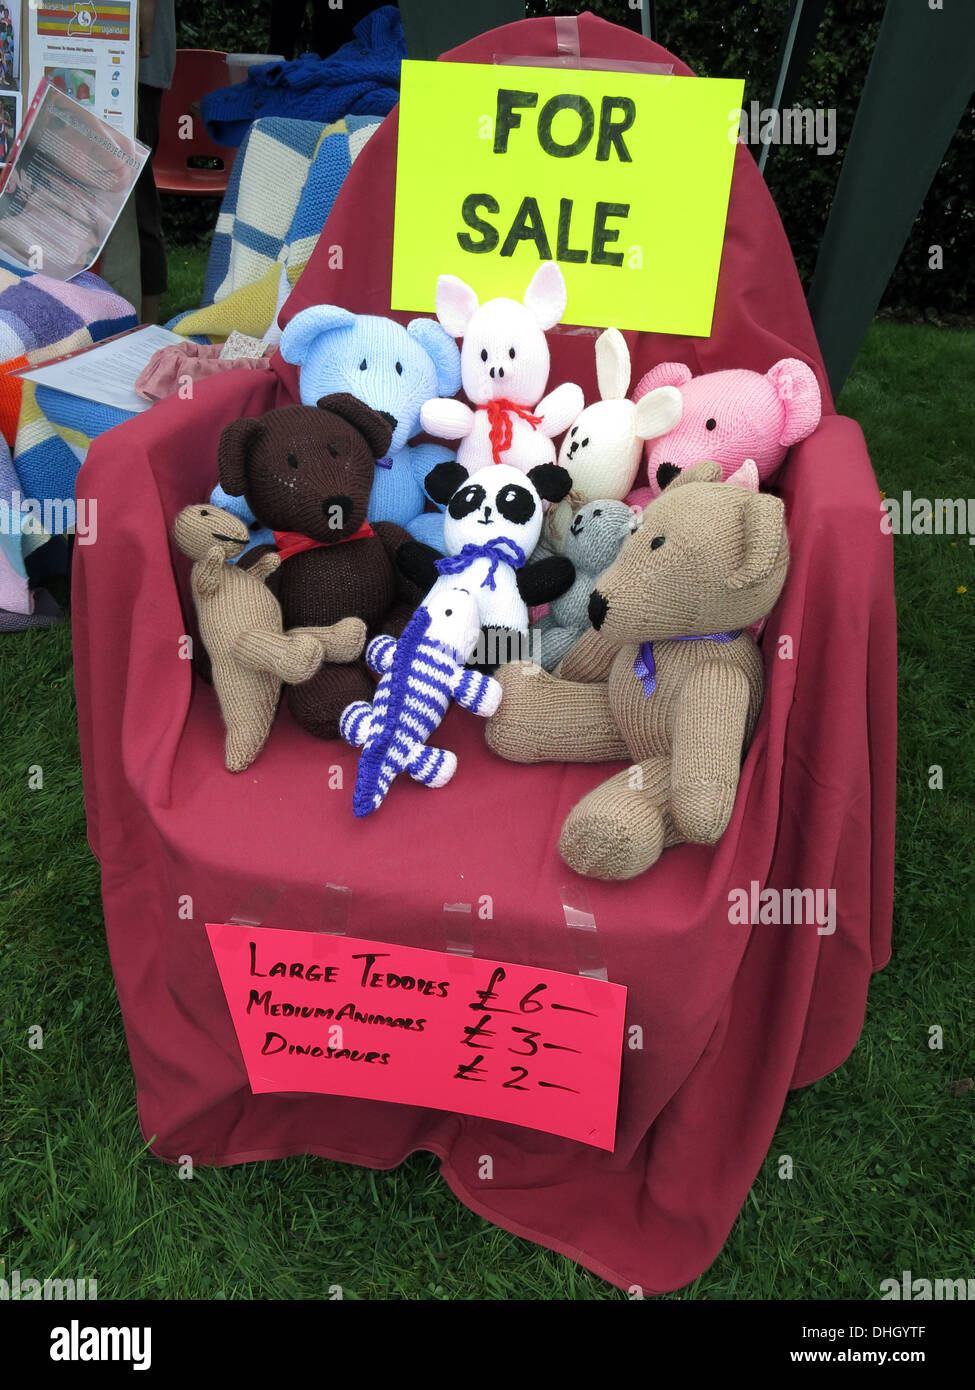 Knitted,animal,things,for,sale,crafts,animals,for,charity,teddy,teddies,wool,fabric,raising,money,raising money,GoTonySmith,Buy Pictures of,Buy Images Of